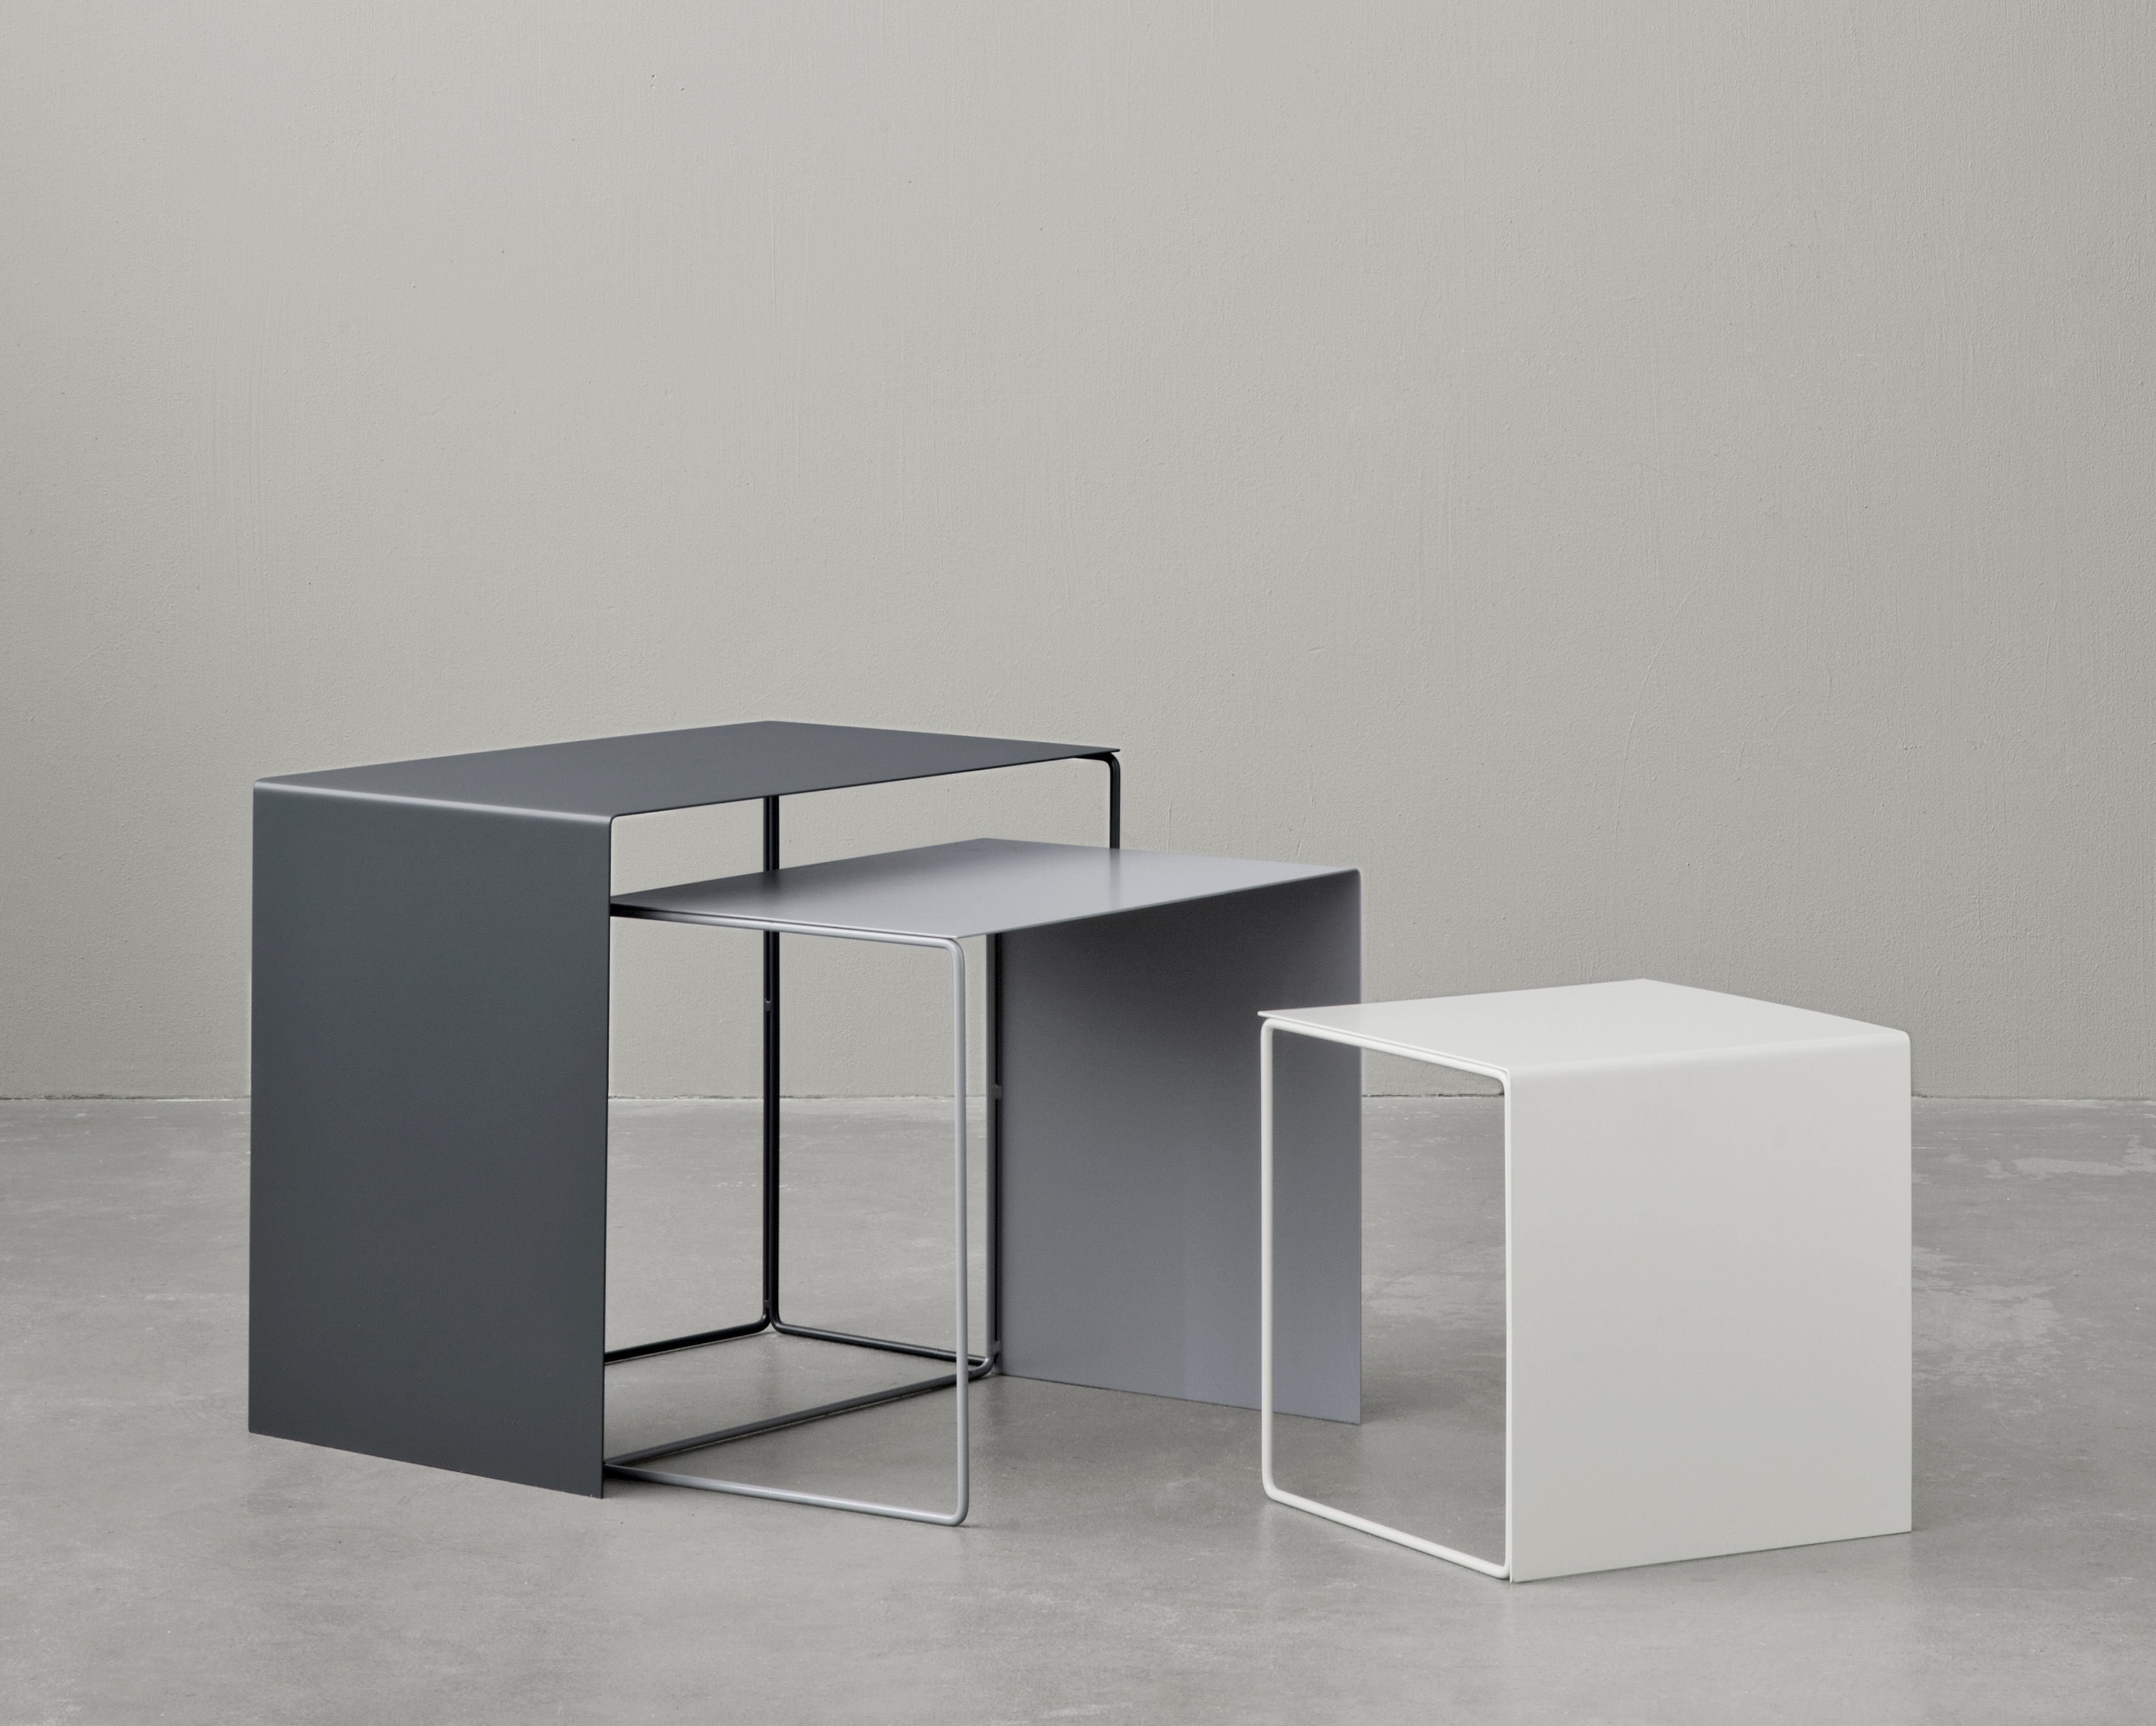 cluster nested tables set of 3 nesting tables light grey grey anthracite by ferm living. Black Bedroom Furniture Sets. Home Design Ideas